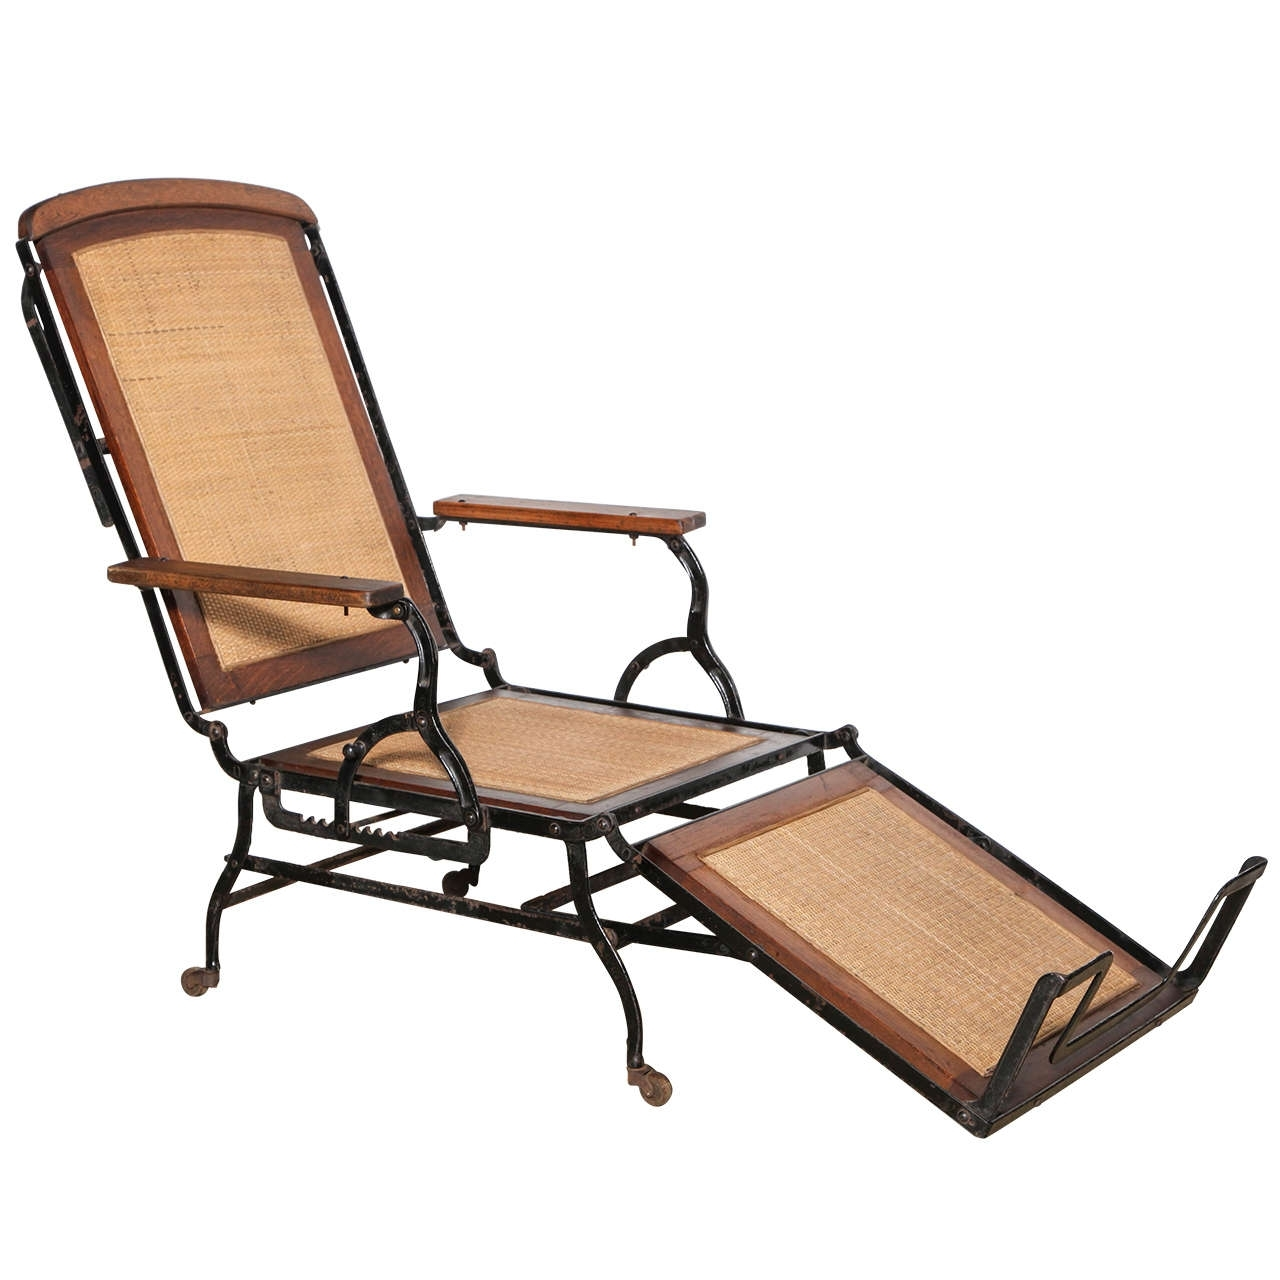 Outdoor Chaise Lounge Chairs Under $200 In Most Popular Cast Iron Chaise Lounge – Chiefkessler (View 12 of 15)